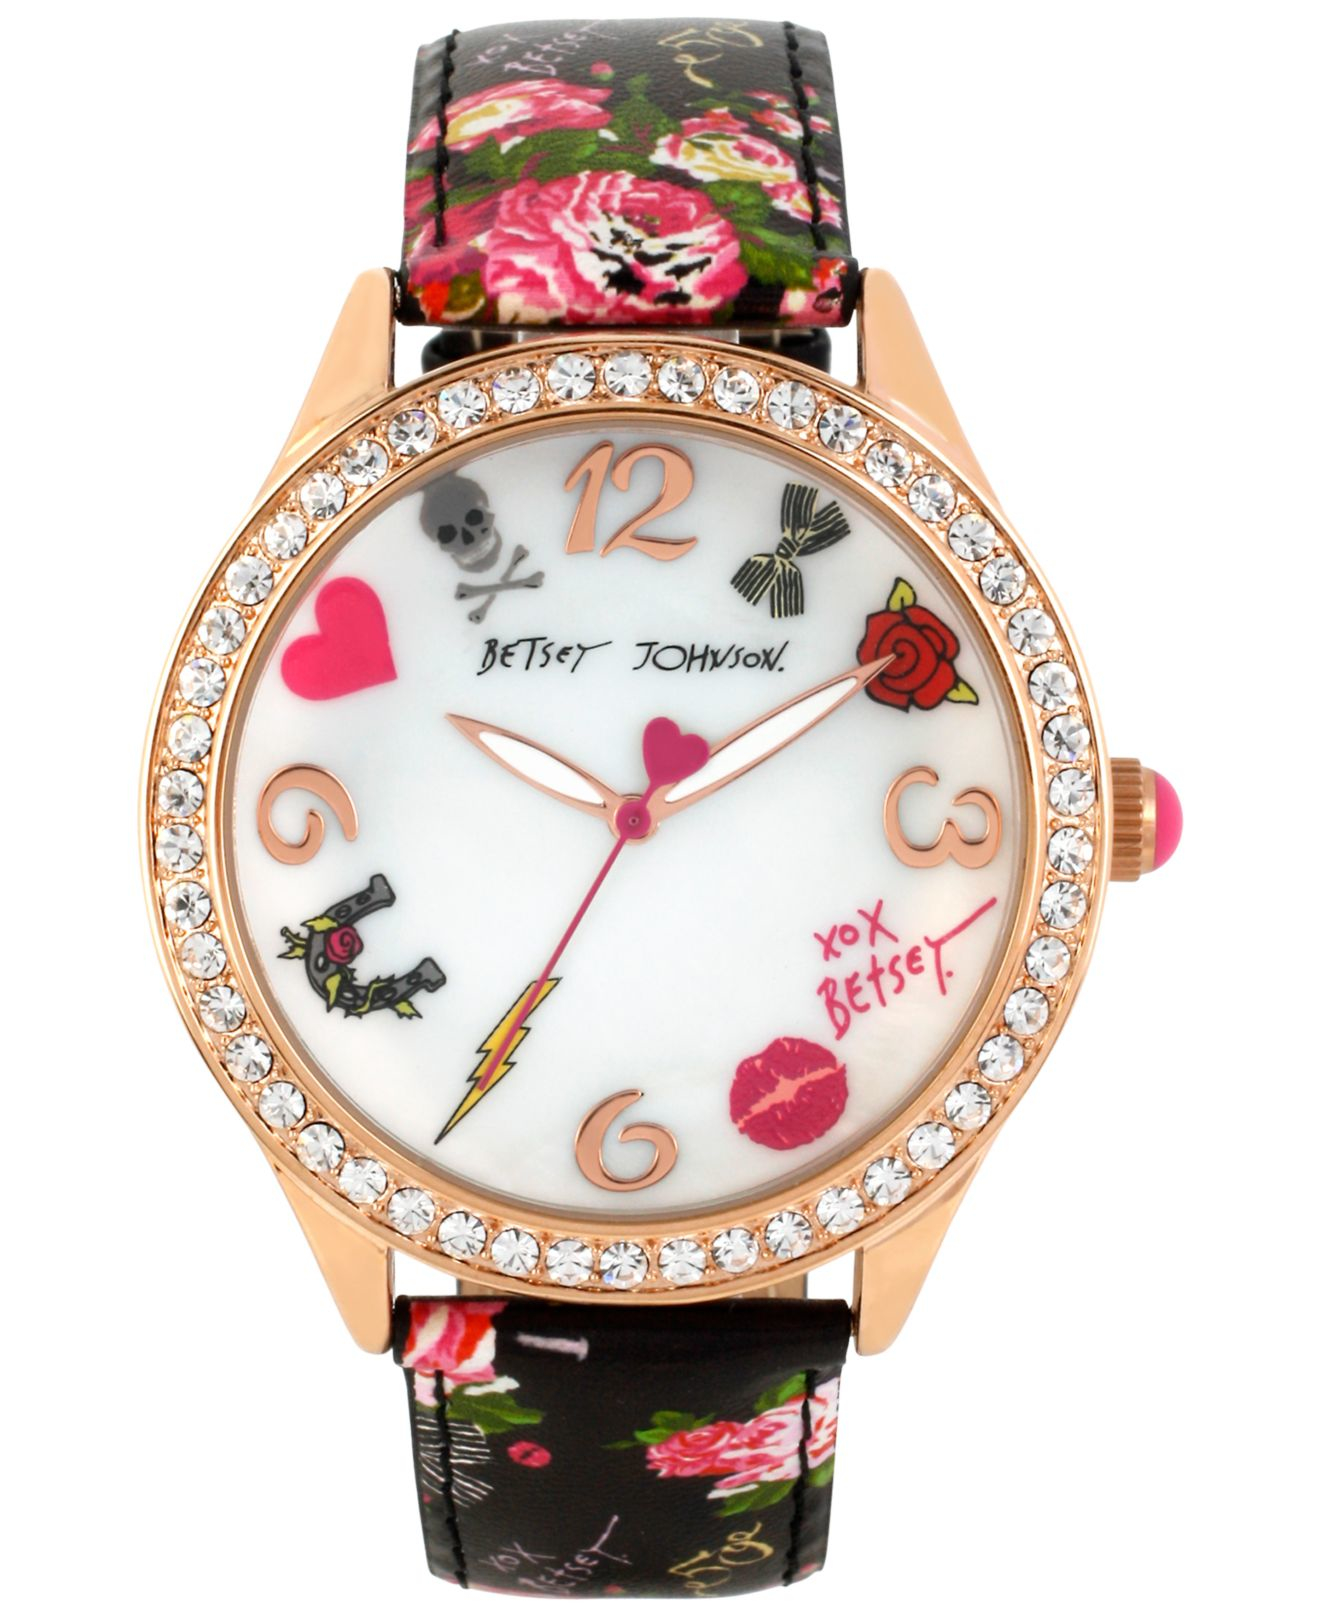 betsey johnson s gold tone floral printed